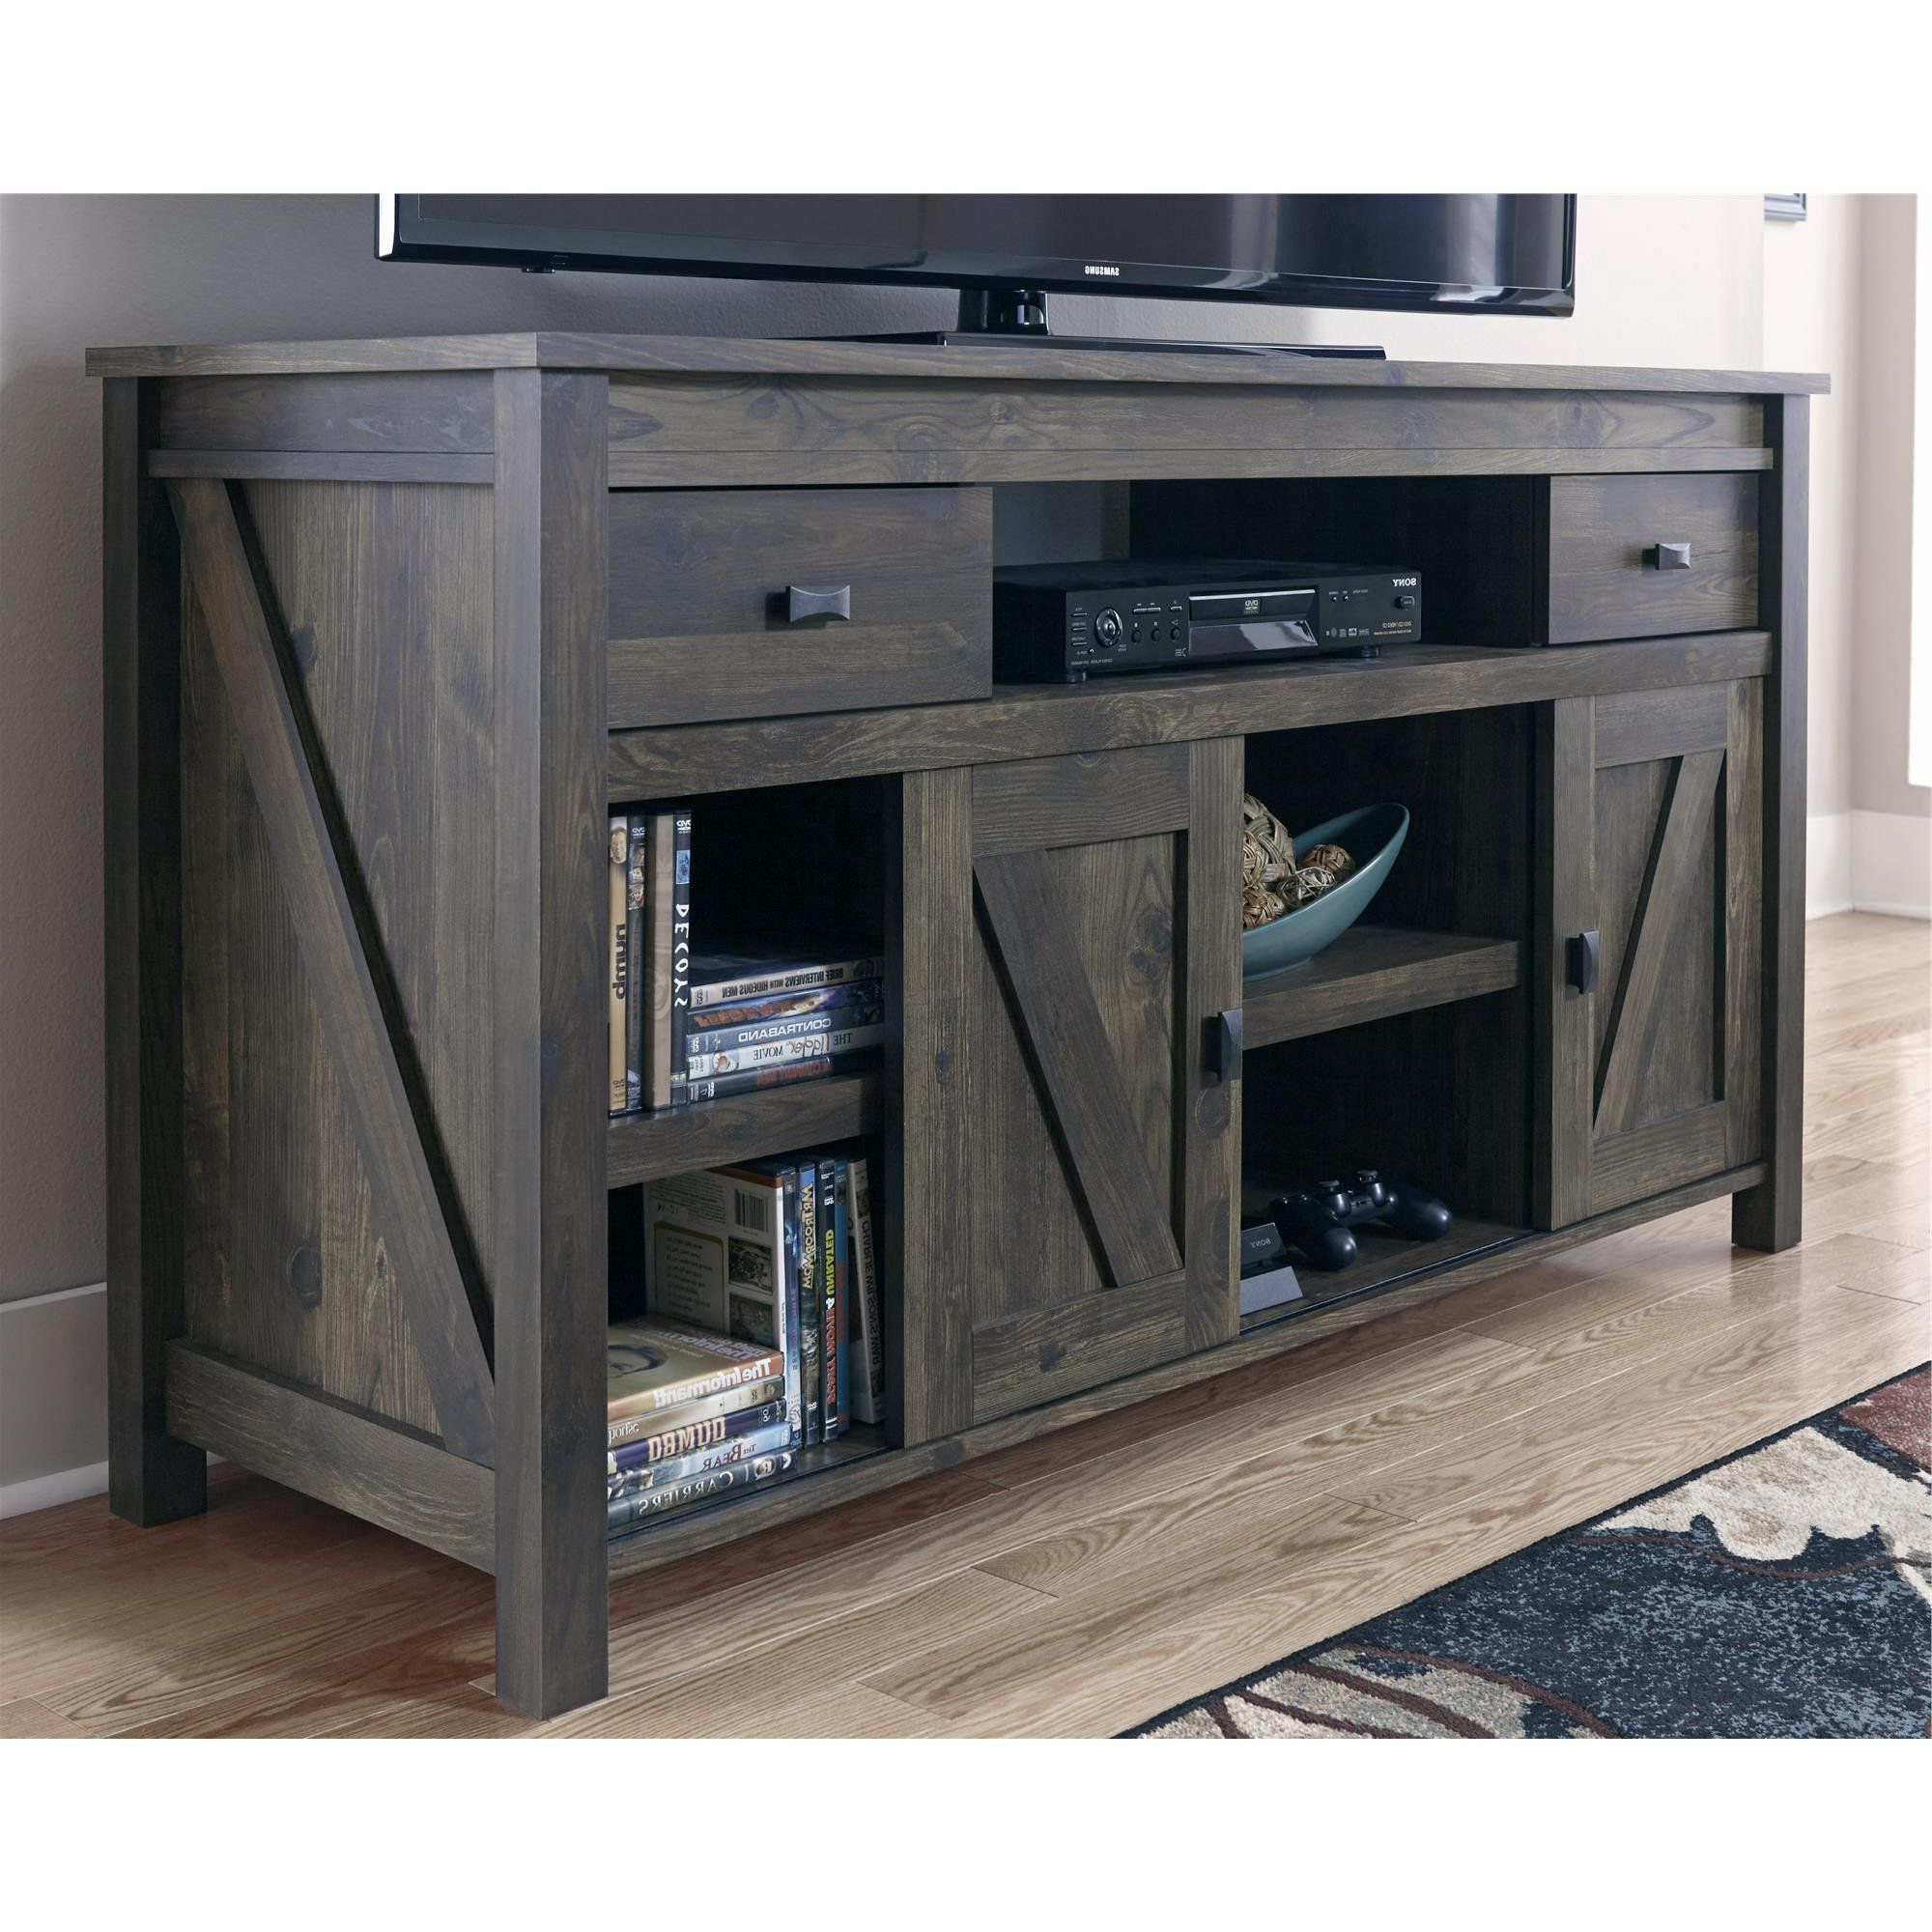 Woven Paths Scandi Farmhouse Tv Stand For Tvs Up To 60 With Woven Paths Barn Door Tv Stands In Multiple Finishes (View 15 of 20)